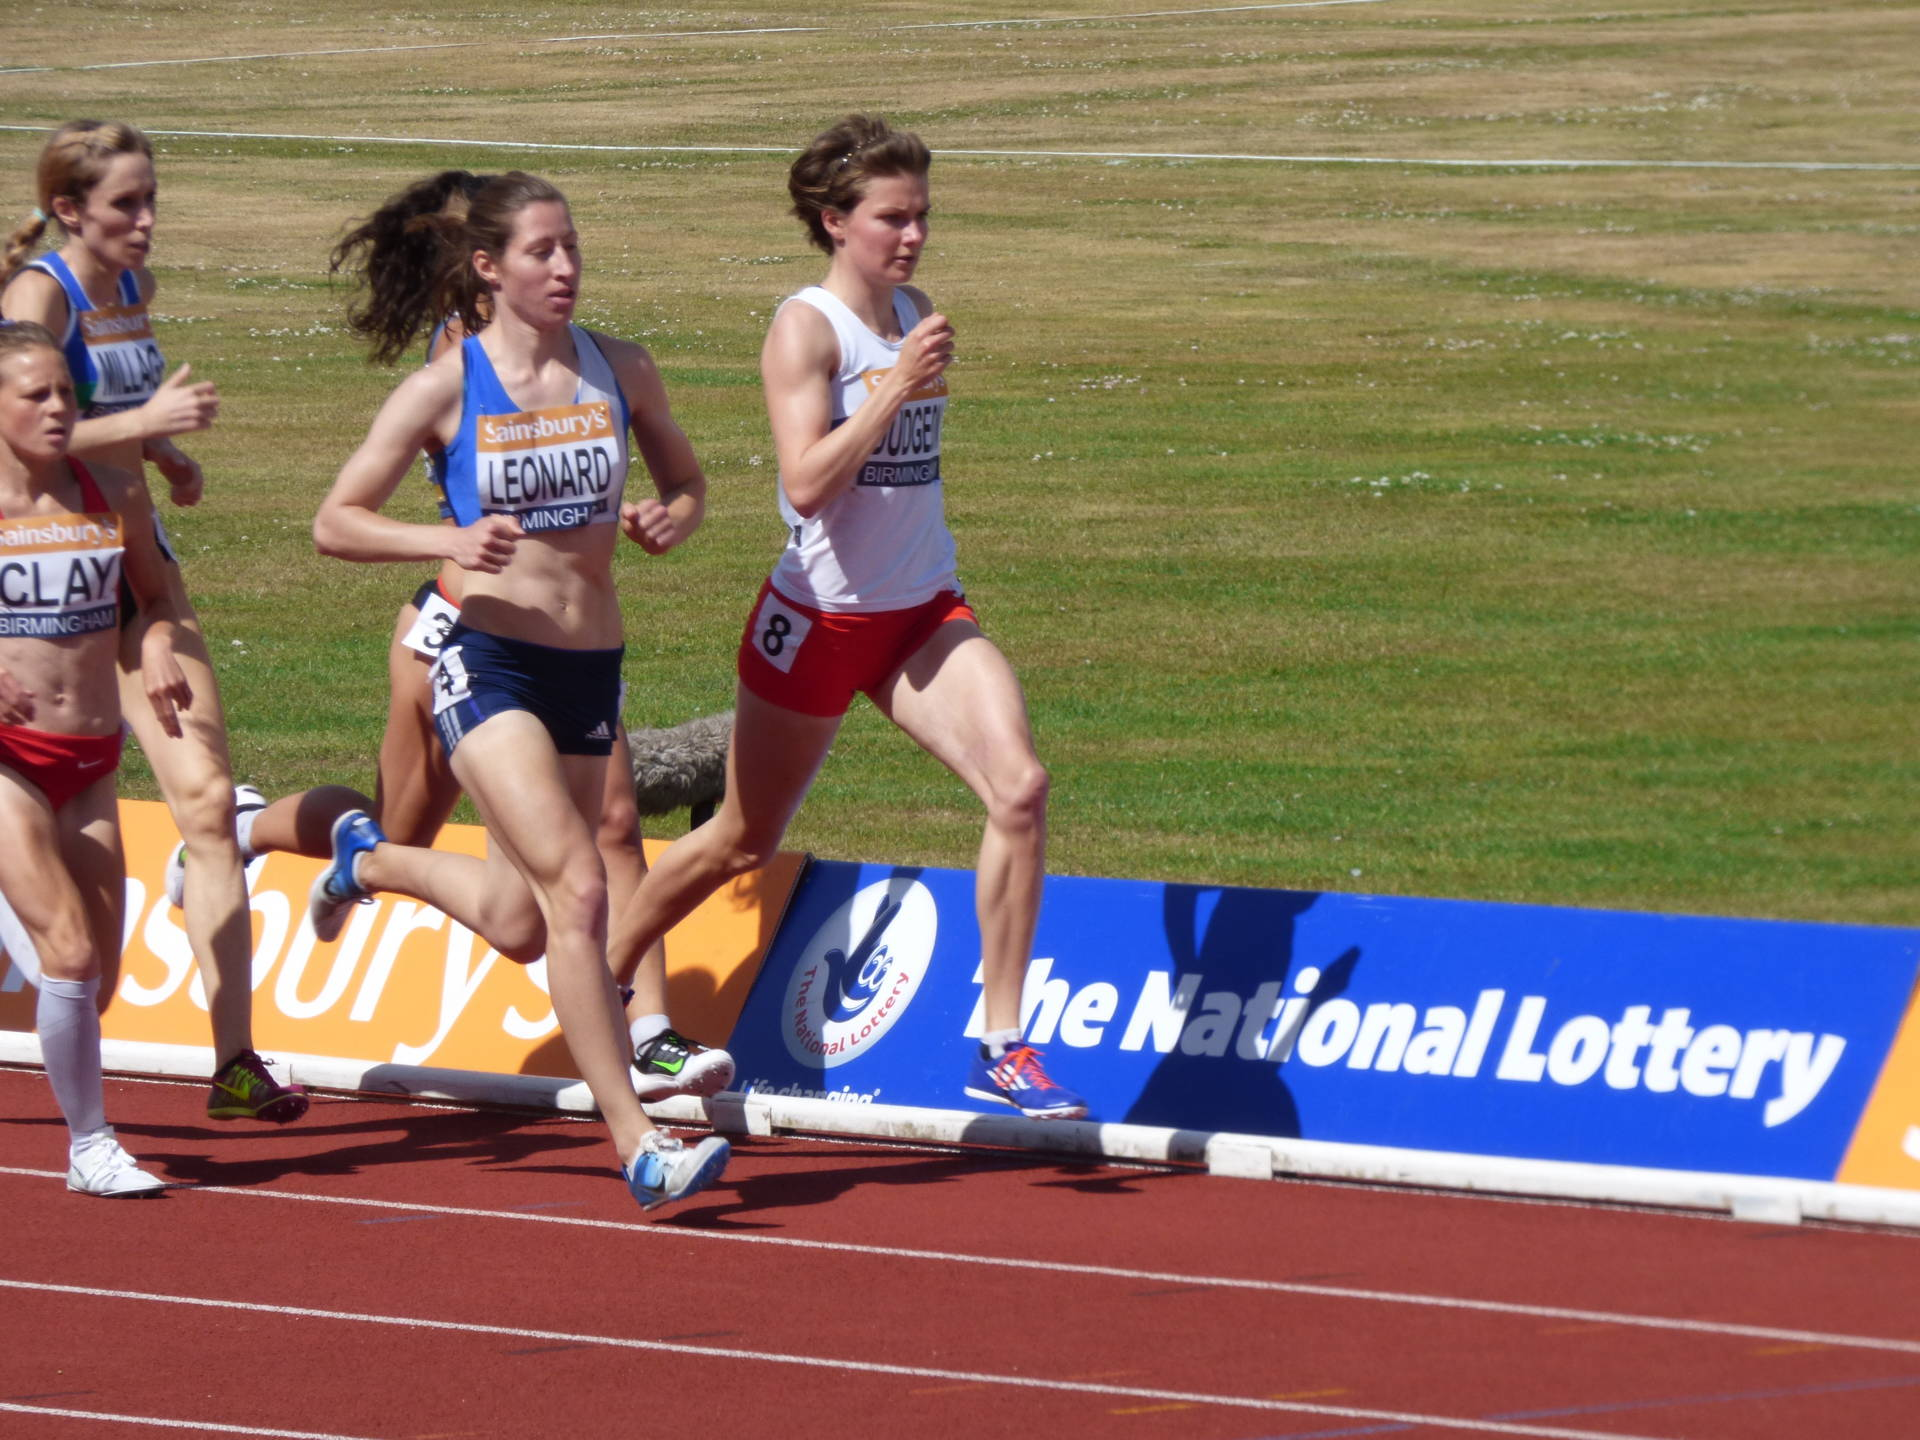 Alison opens up 2016 with an Indoor 1500m PB and a World Indoor Championships Qualifying Time